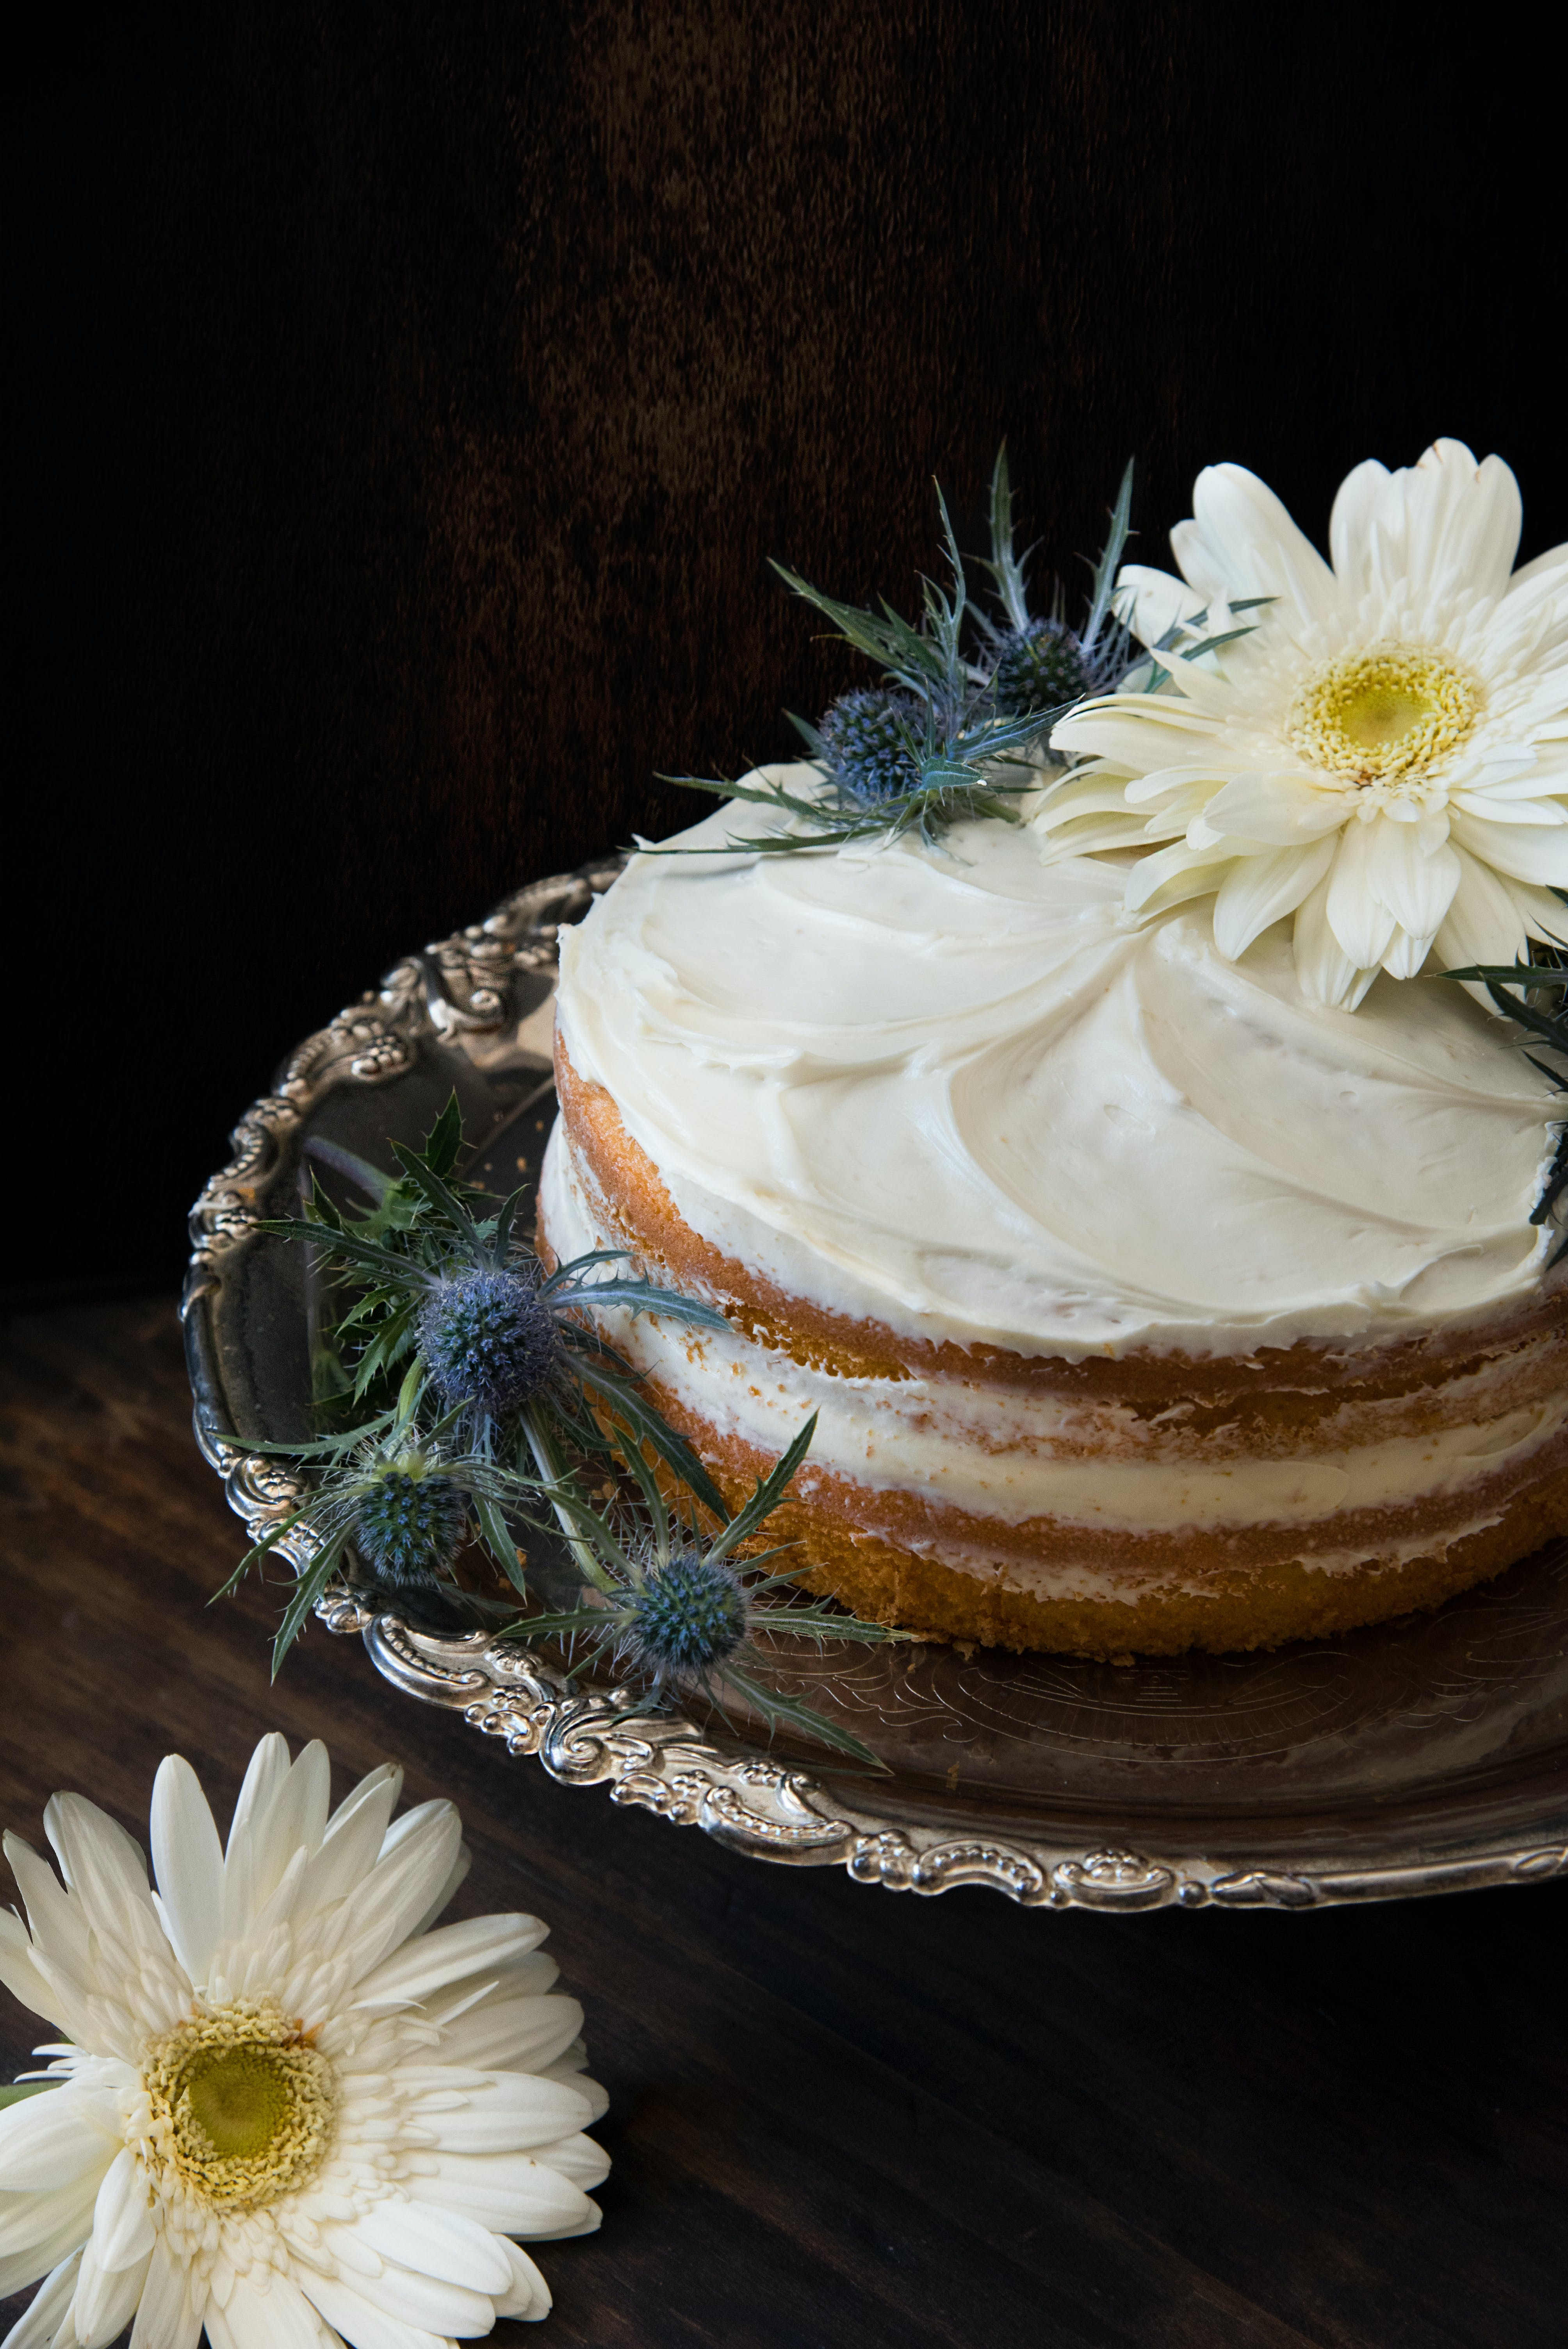 Fondant Cake Whipped With White Icing and Topped With White Petaled Flower on Grey Stainless Steel Plate